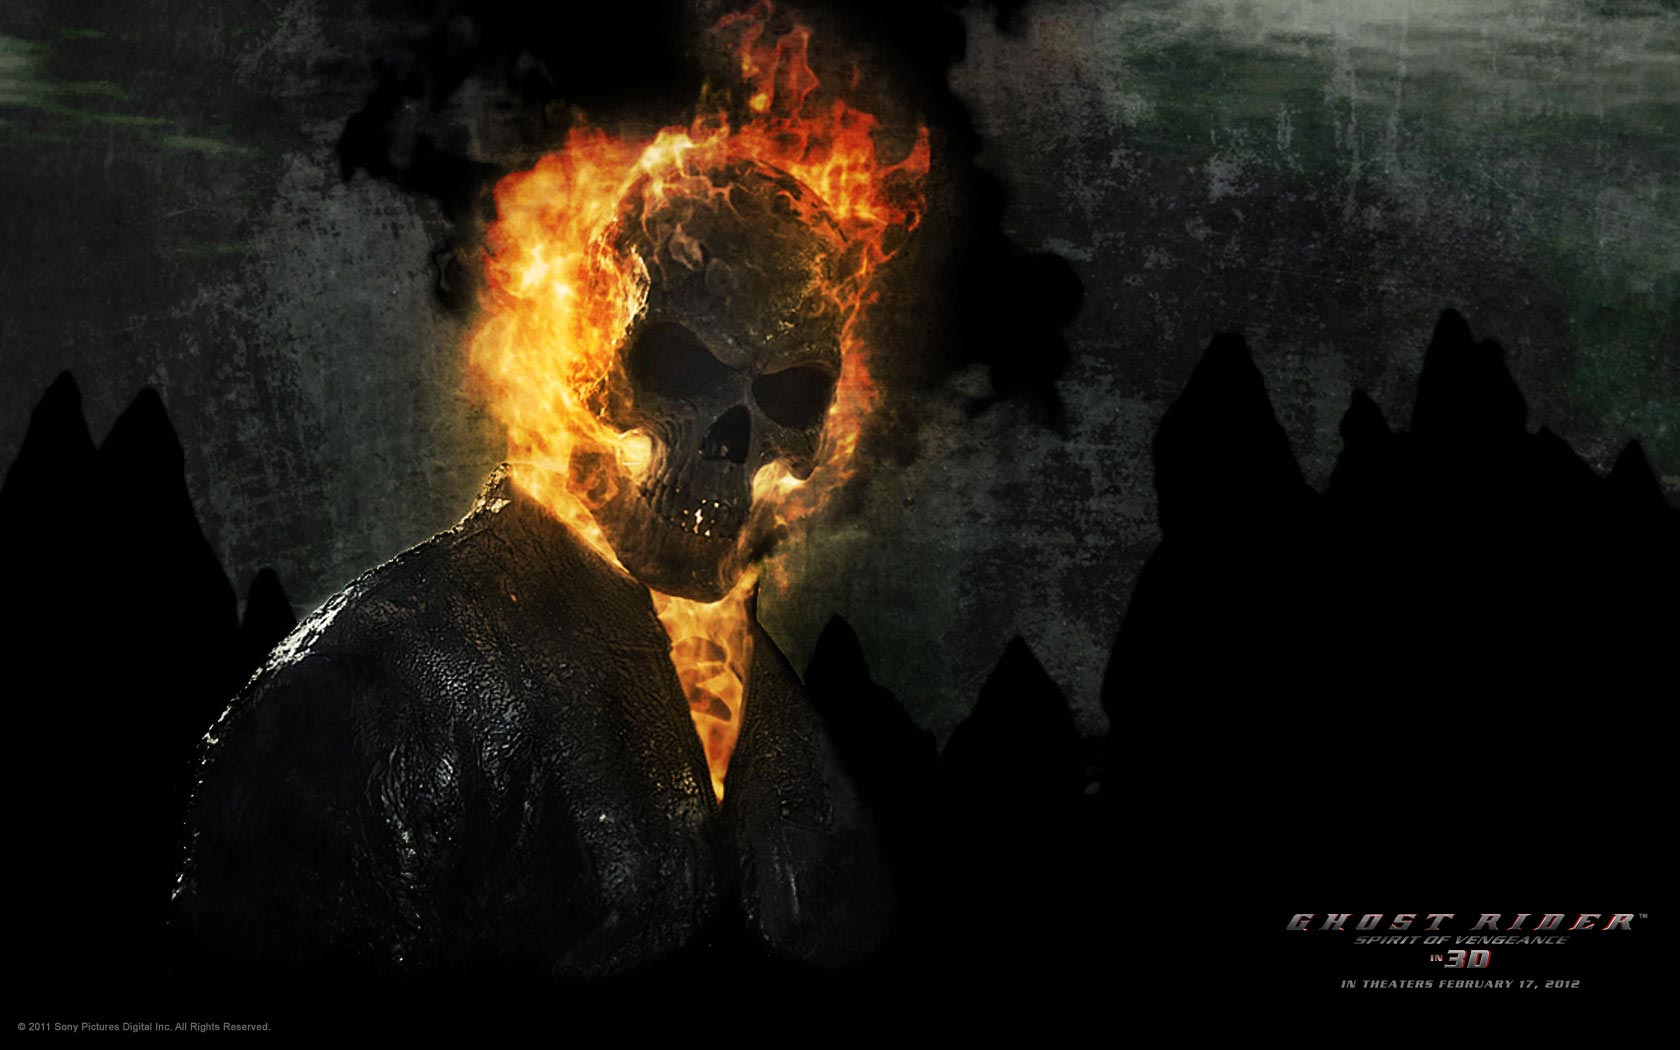 Abhishek Name Wallpaper 3d Ghost Rider Spirit Of Vengeance Wallpapers Filmofilia